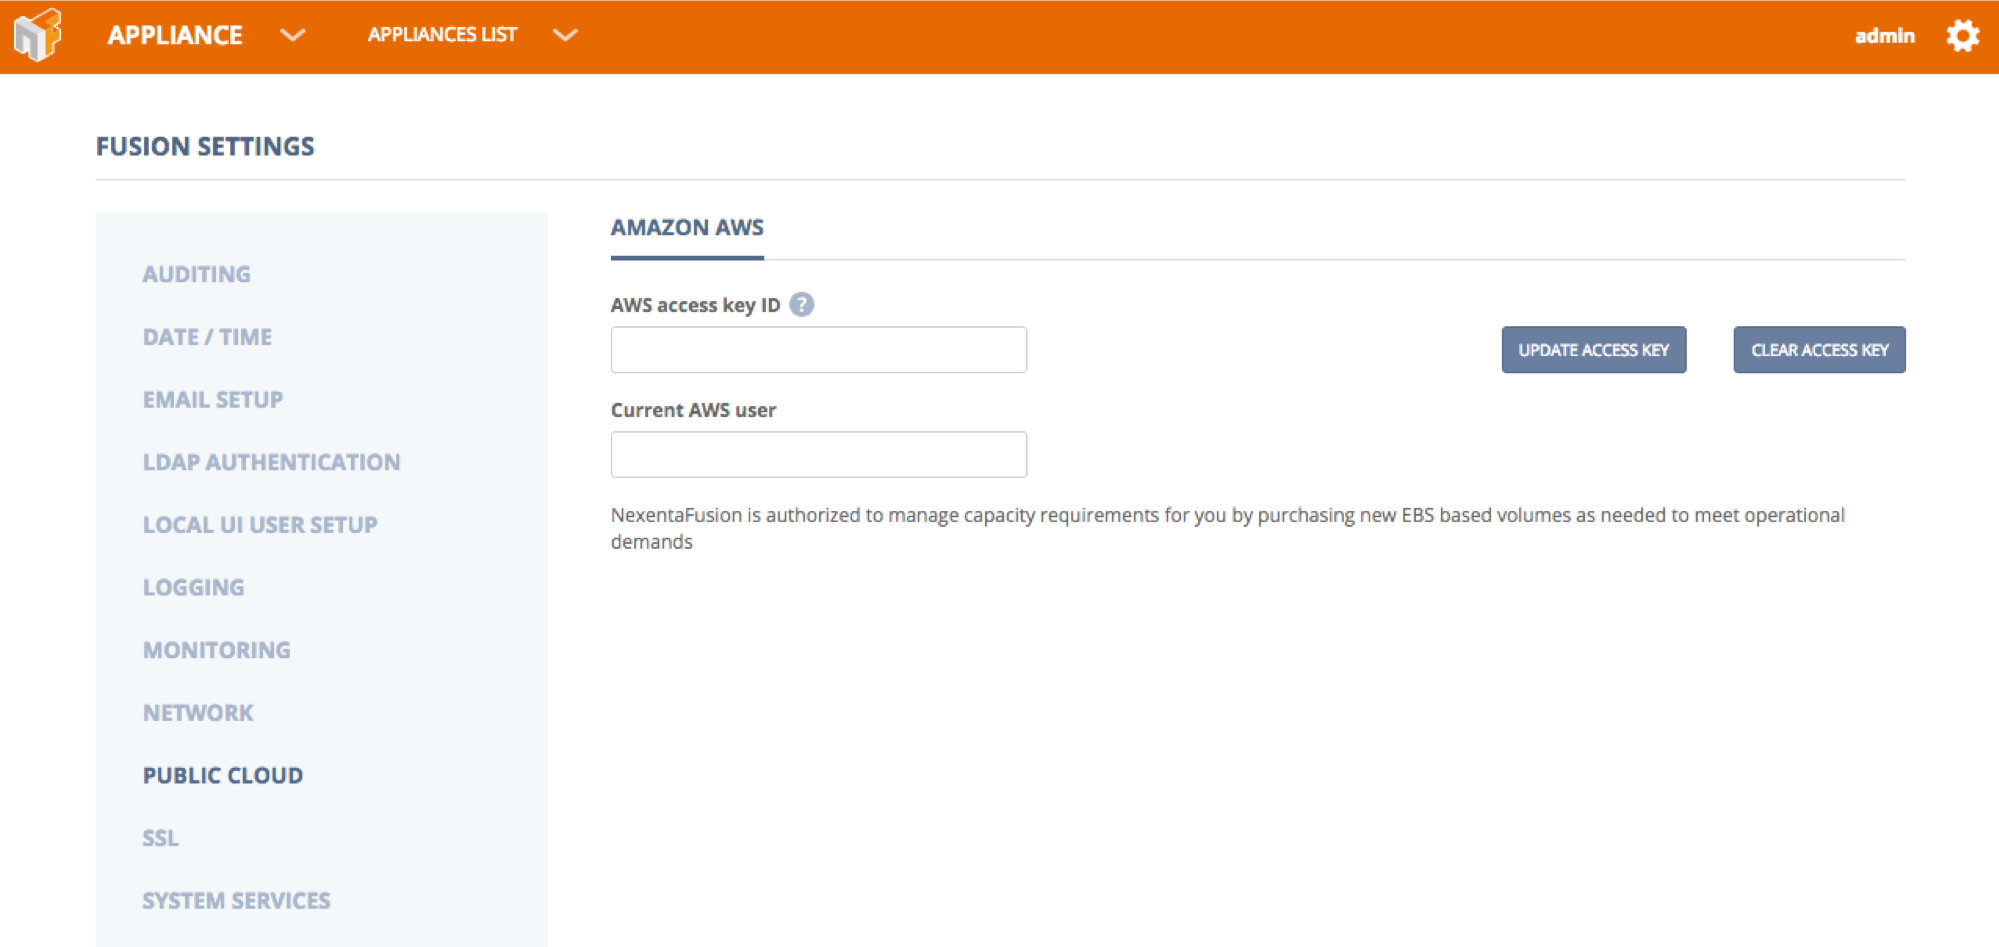 Once Yo U Have NexentaFusion Installed You Only Need To Add In Your AWS  Access Keys In The Fusion Settings. They Can Be Found Under The Main Cog U2013  Settings ...